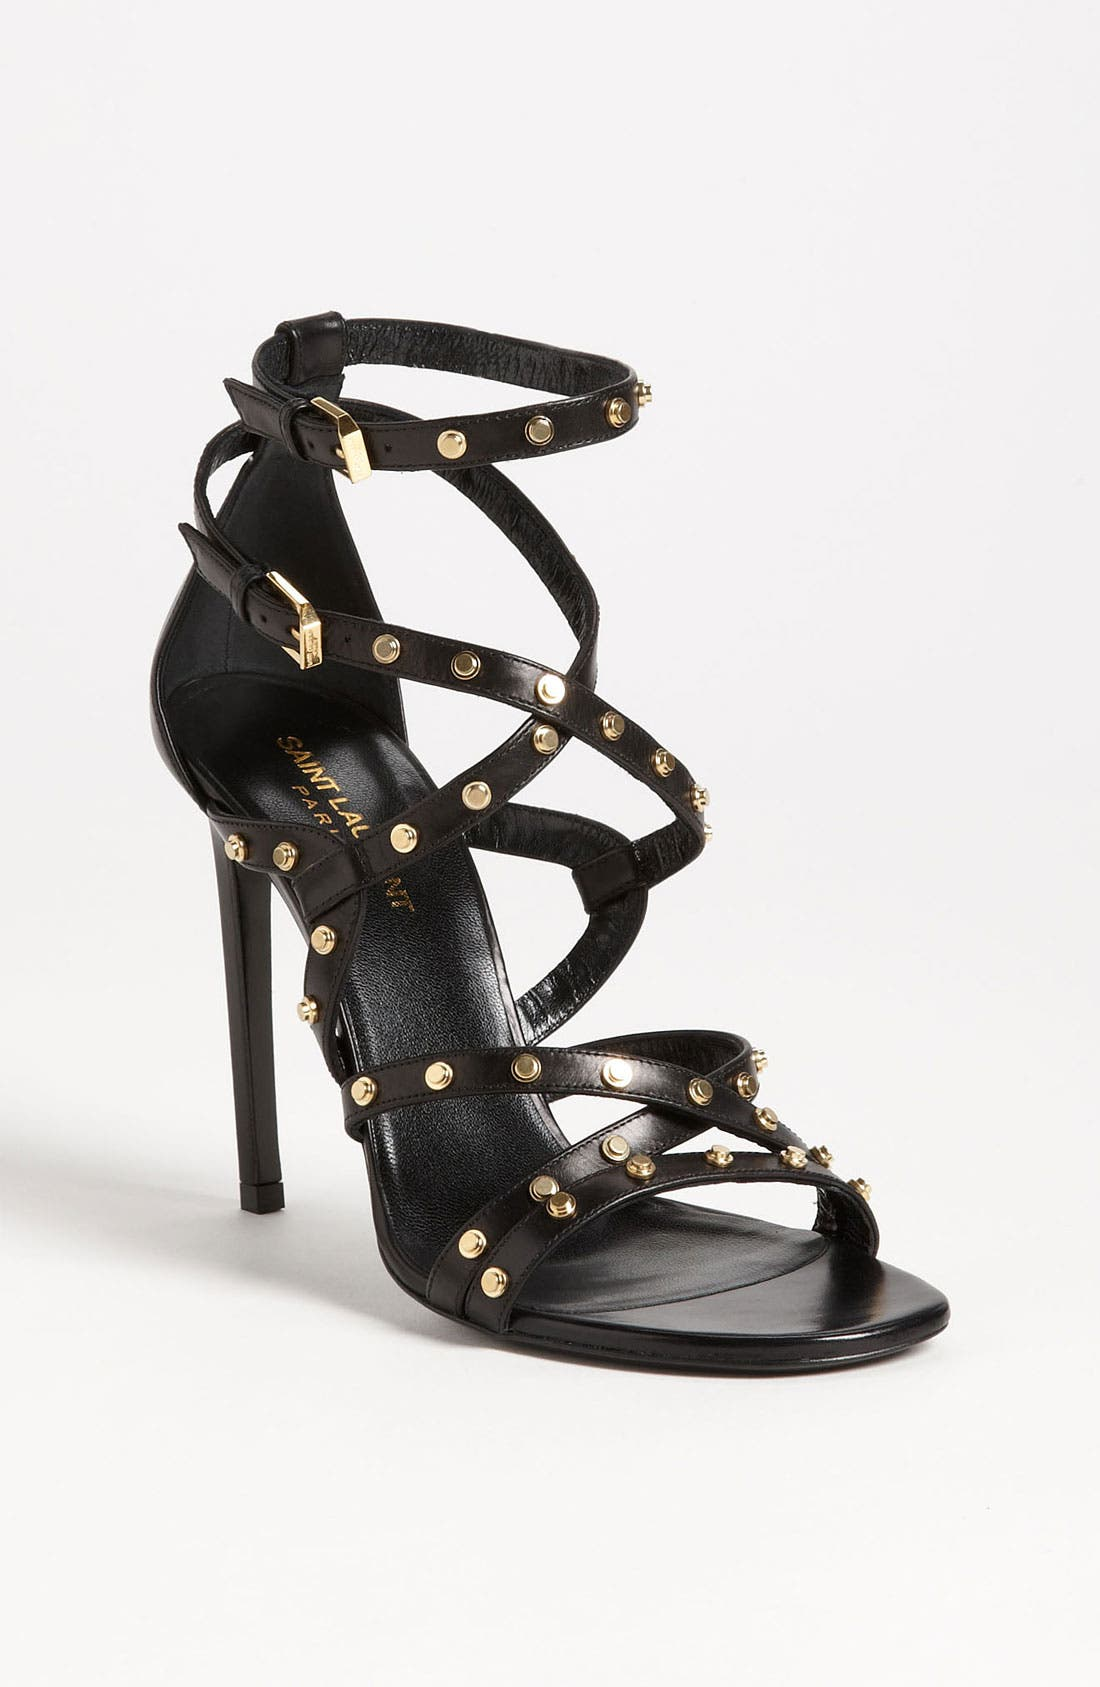 Alternate Image 1 Selected - Saint Laurent 'Jerry' Studded Sandal